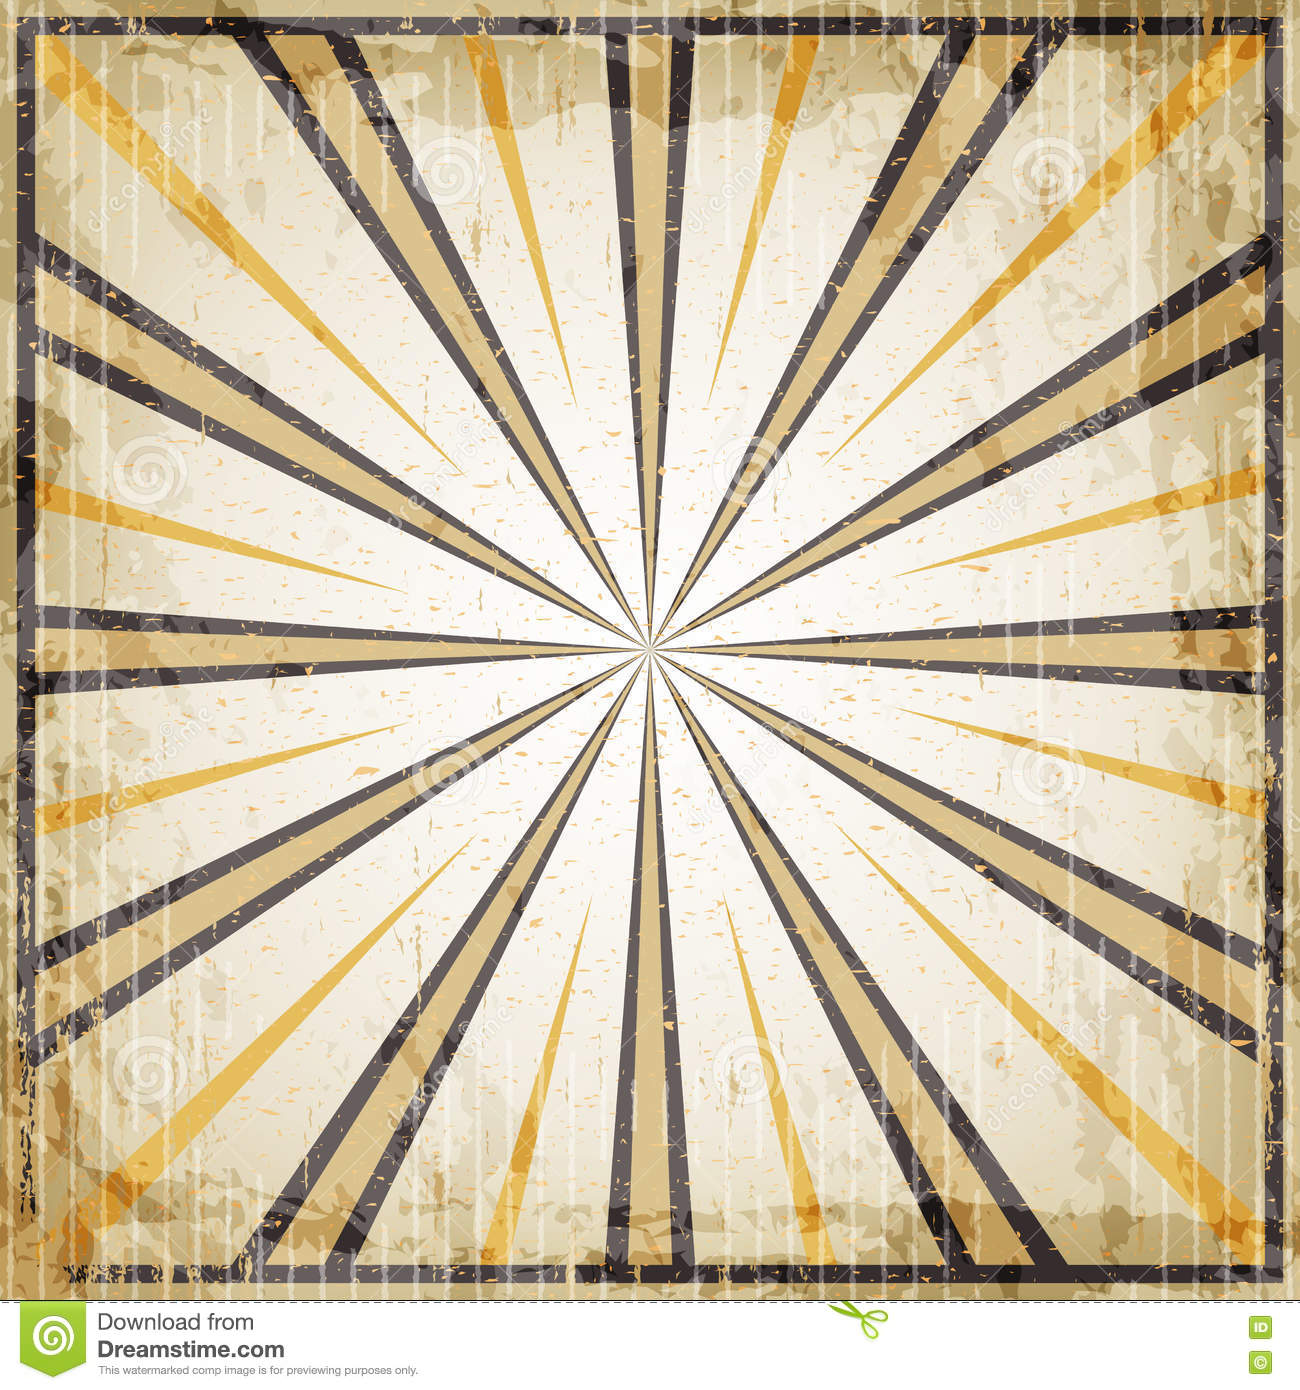 Download halloween vintage art deco background black and orange rays old paper stock